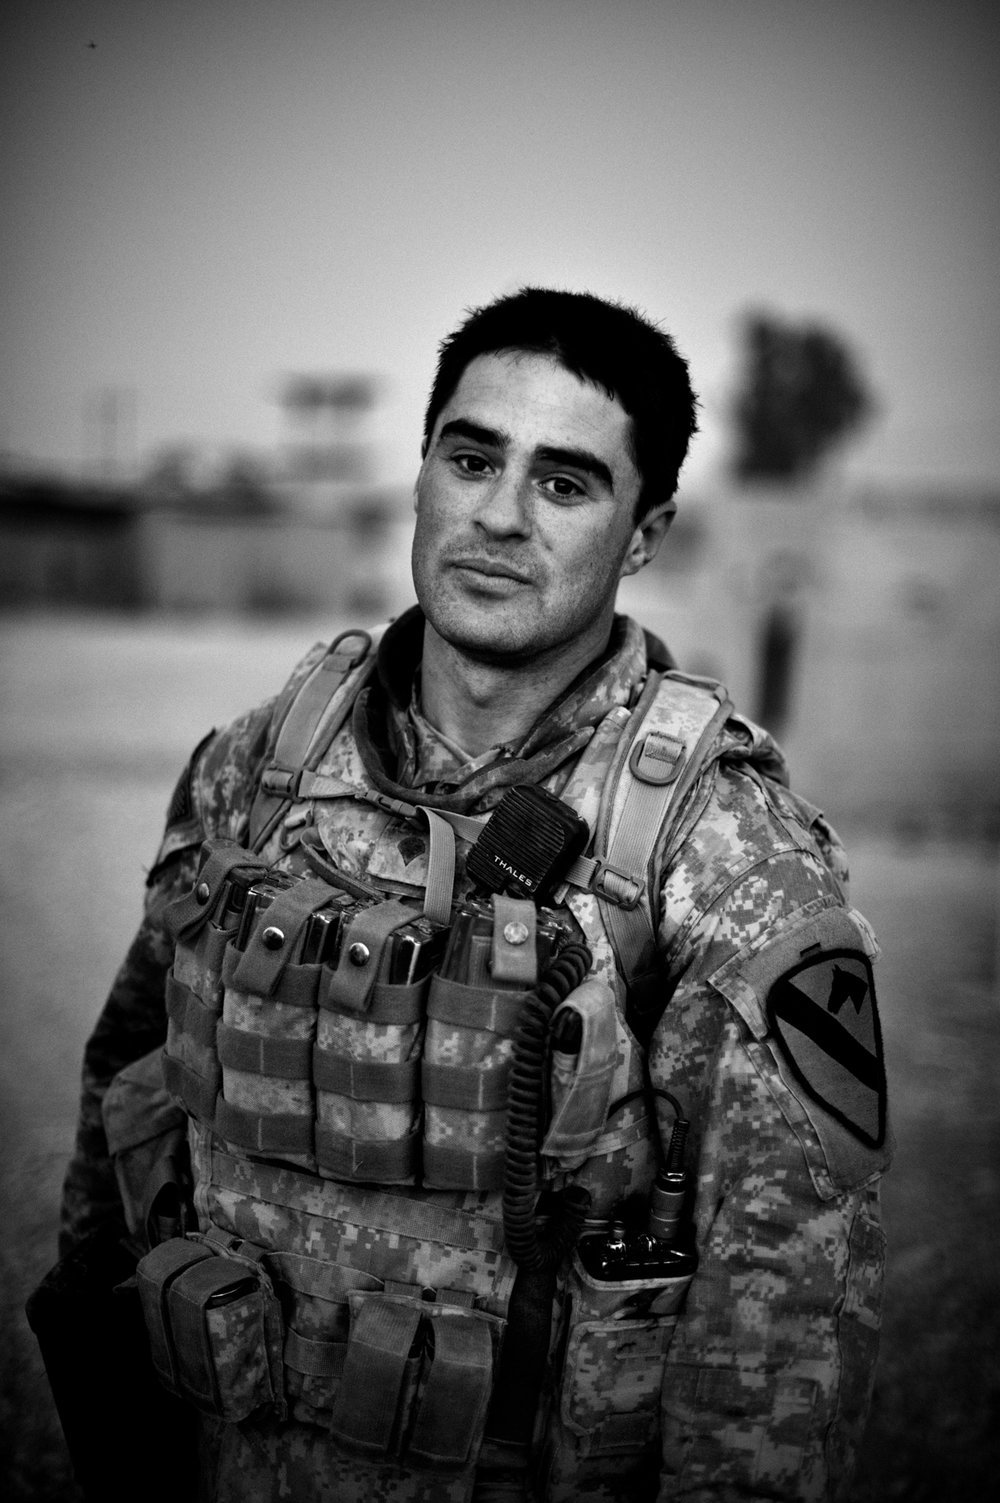 The last 50,000 soldiers in Iraq